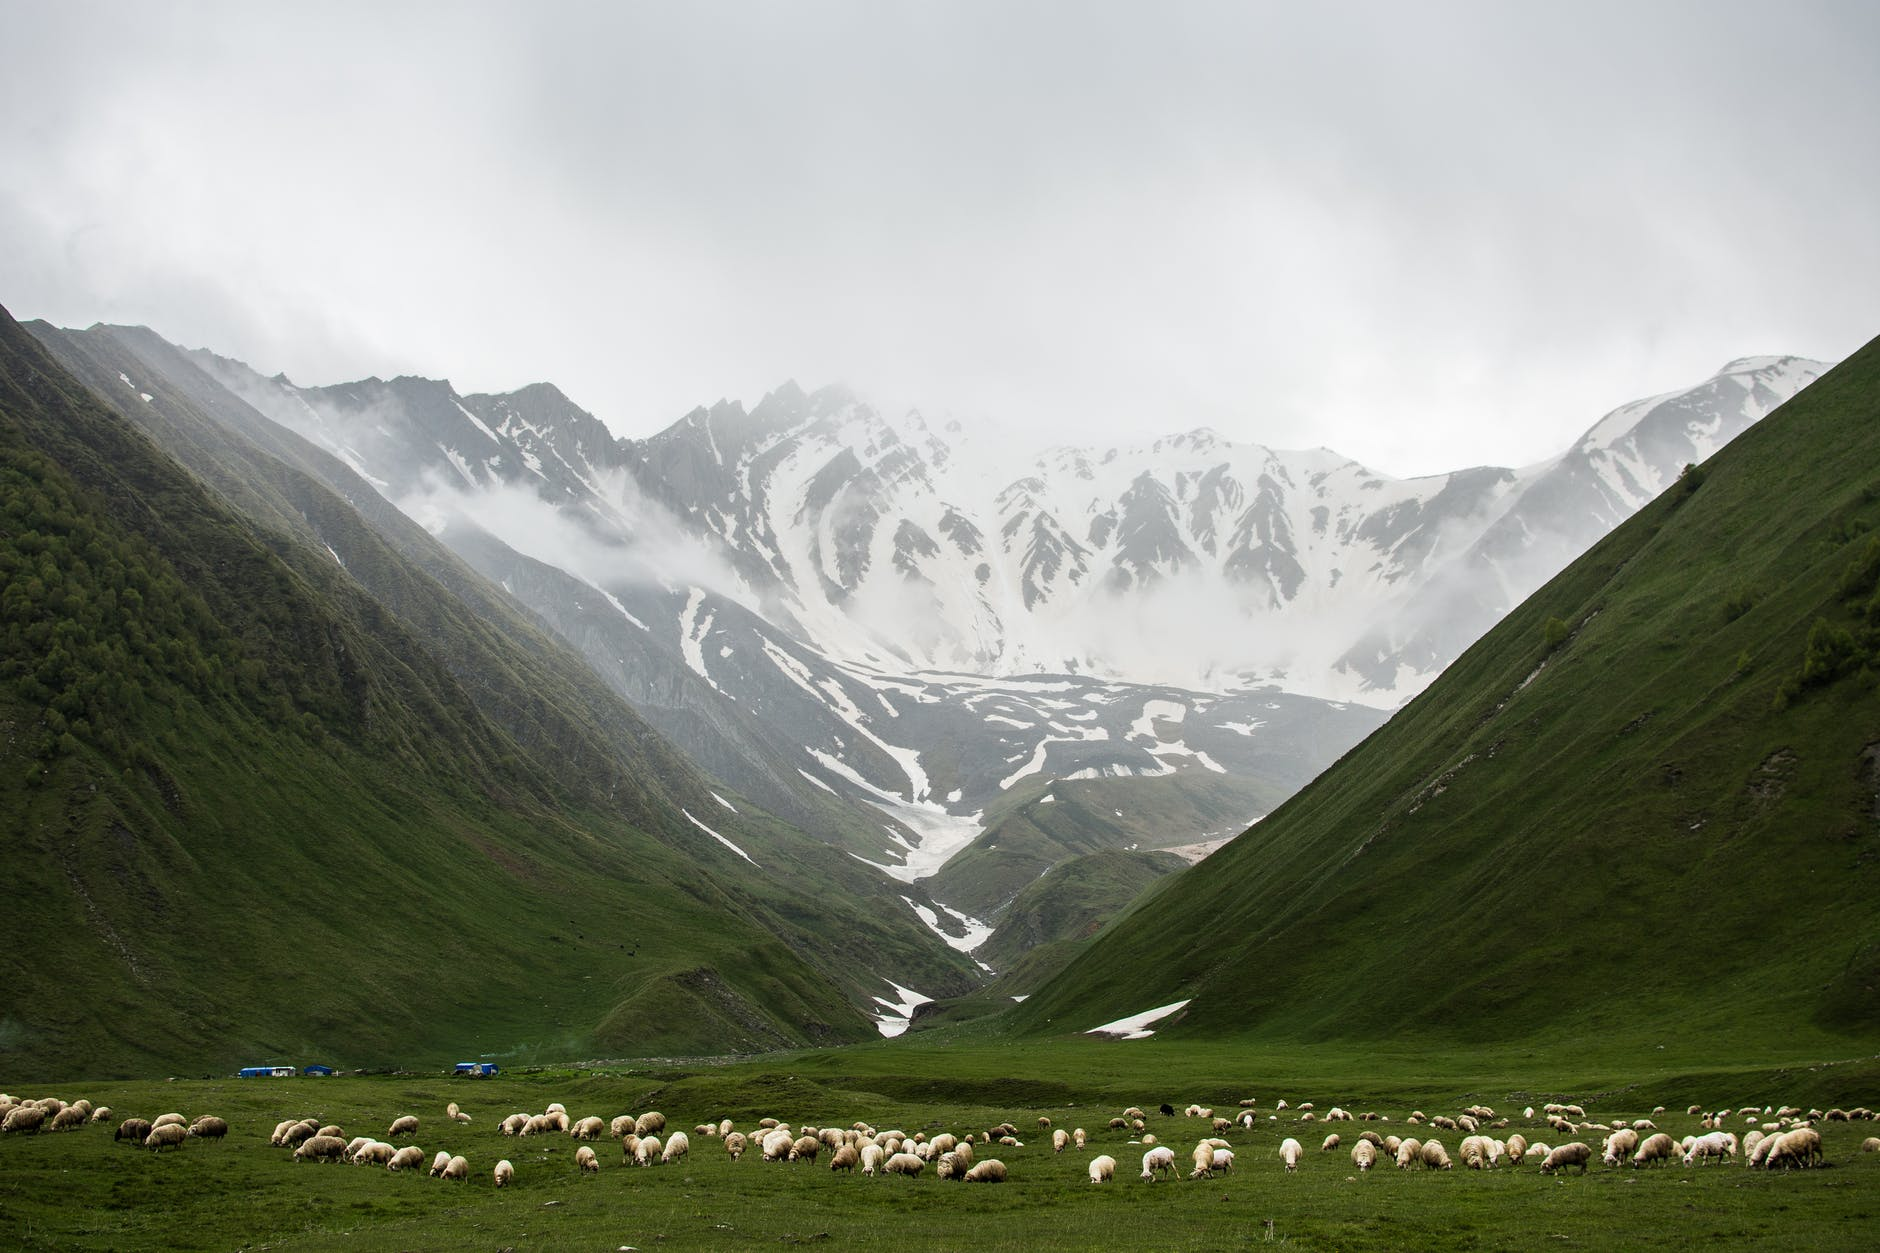 mountains dusted with snow and a flock of sheep grazing in a green valley